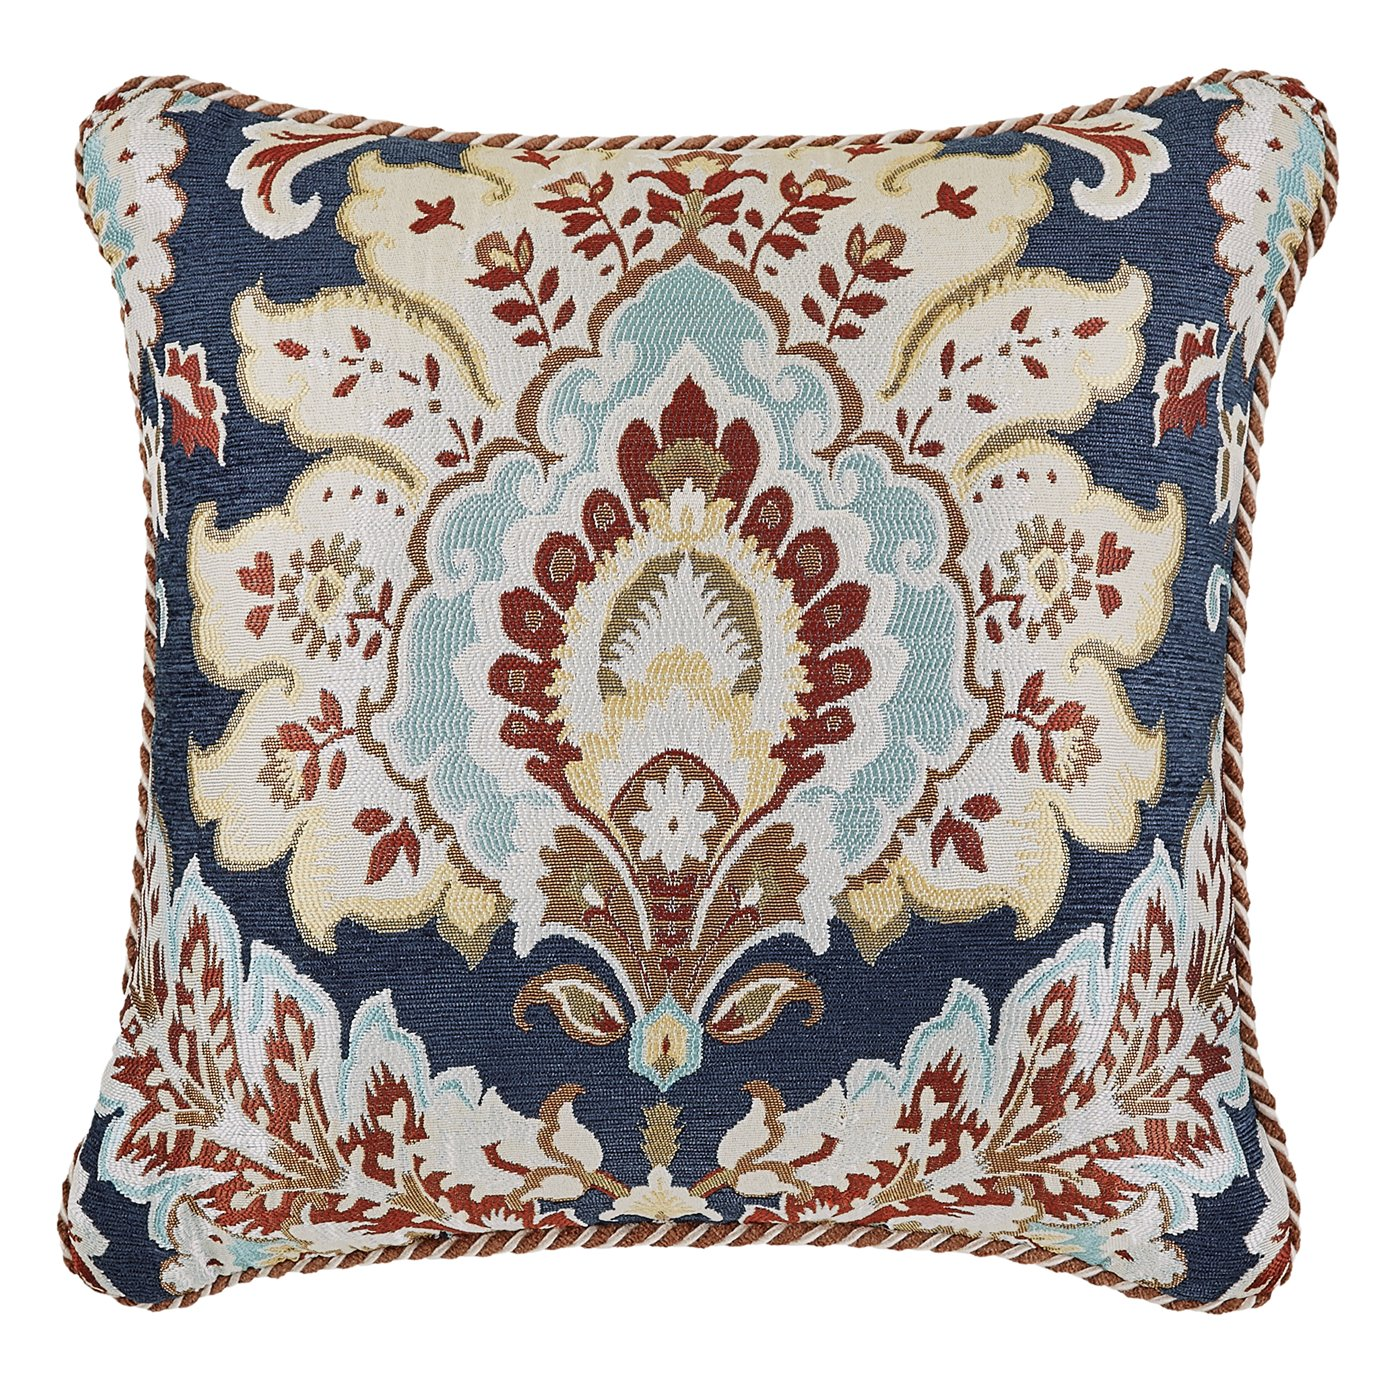 Finnegan Square Pillow 18x18